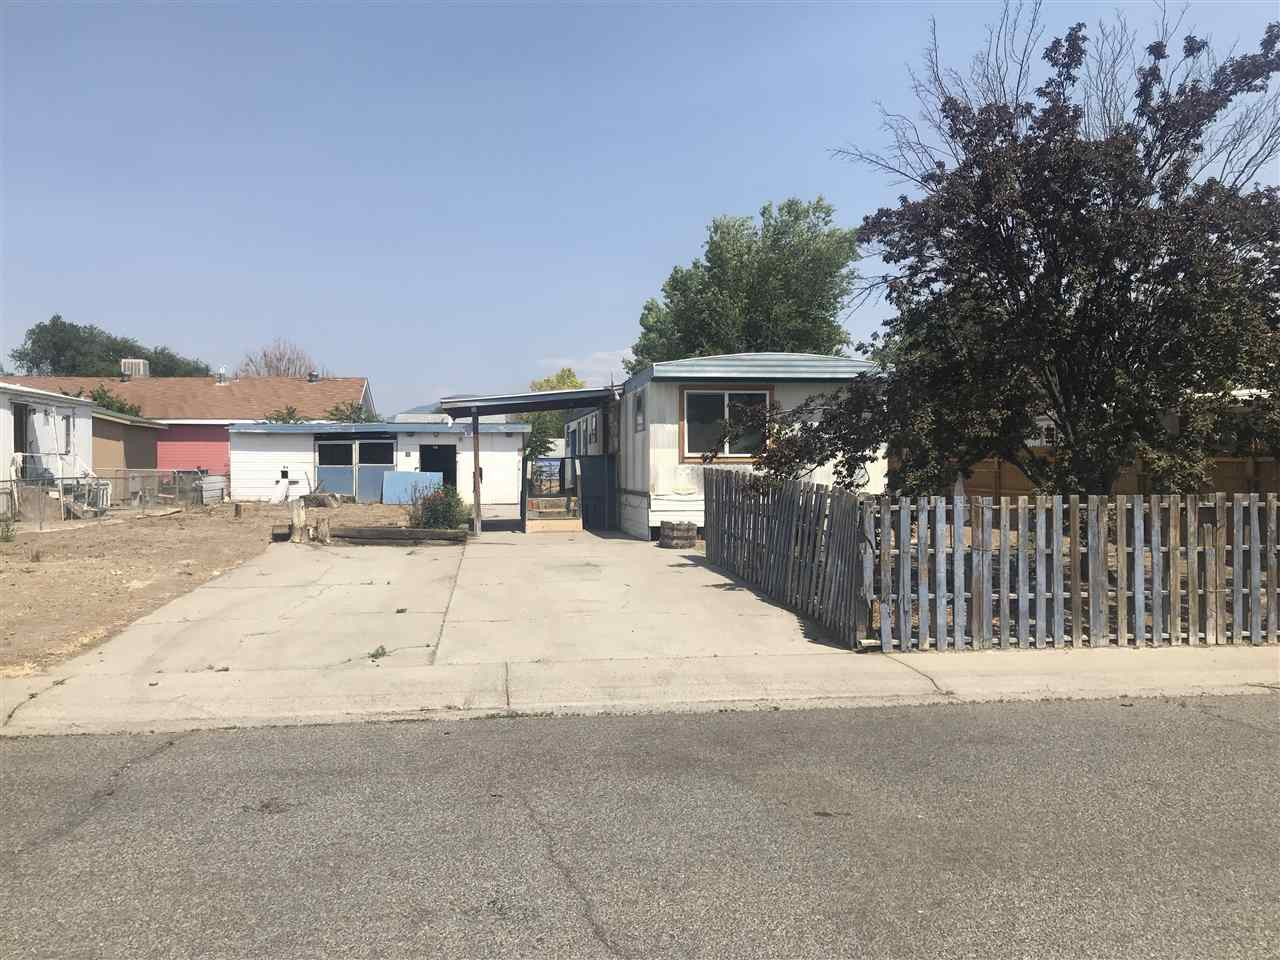 Manufactured home on OWNED lot in Northeast Grand Junction. The home needs some TLC, but also comes with a large outdoor storage shed and a cleared lot. The fixer-upper is located in a living community with no monthly dues or HOA fees! Close to area schools and shopping! Mature tree on site and the potential to landscape to your favored design specs! Bring your offers!